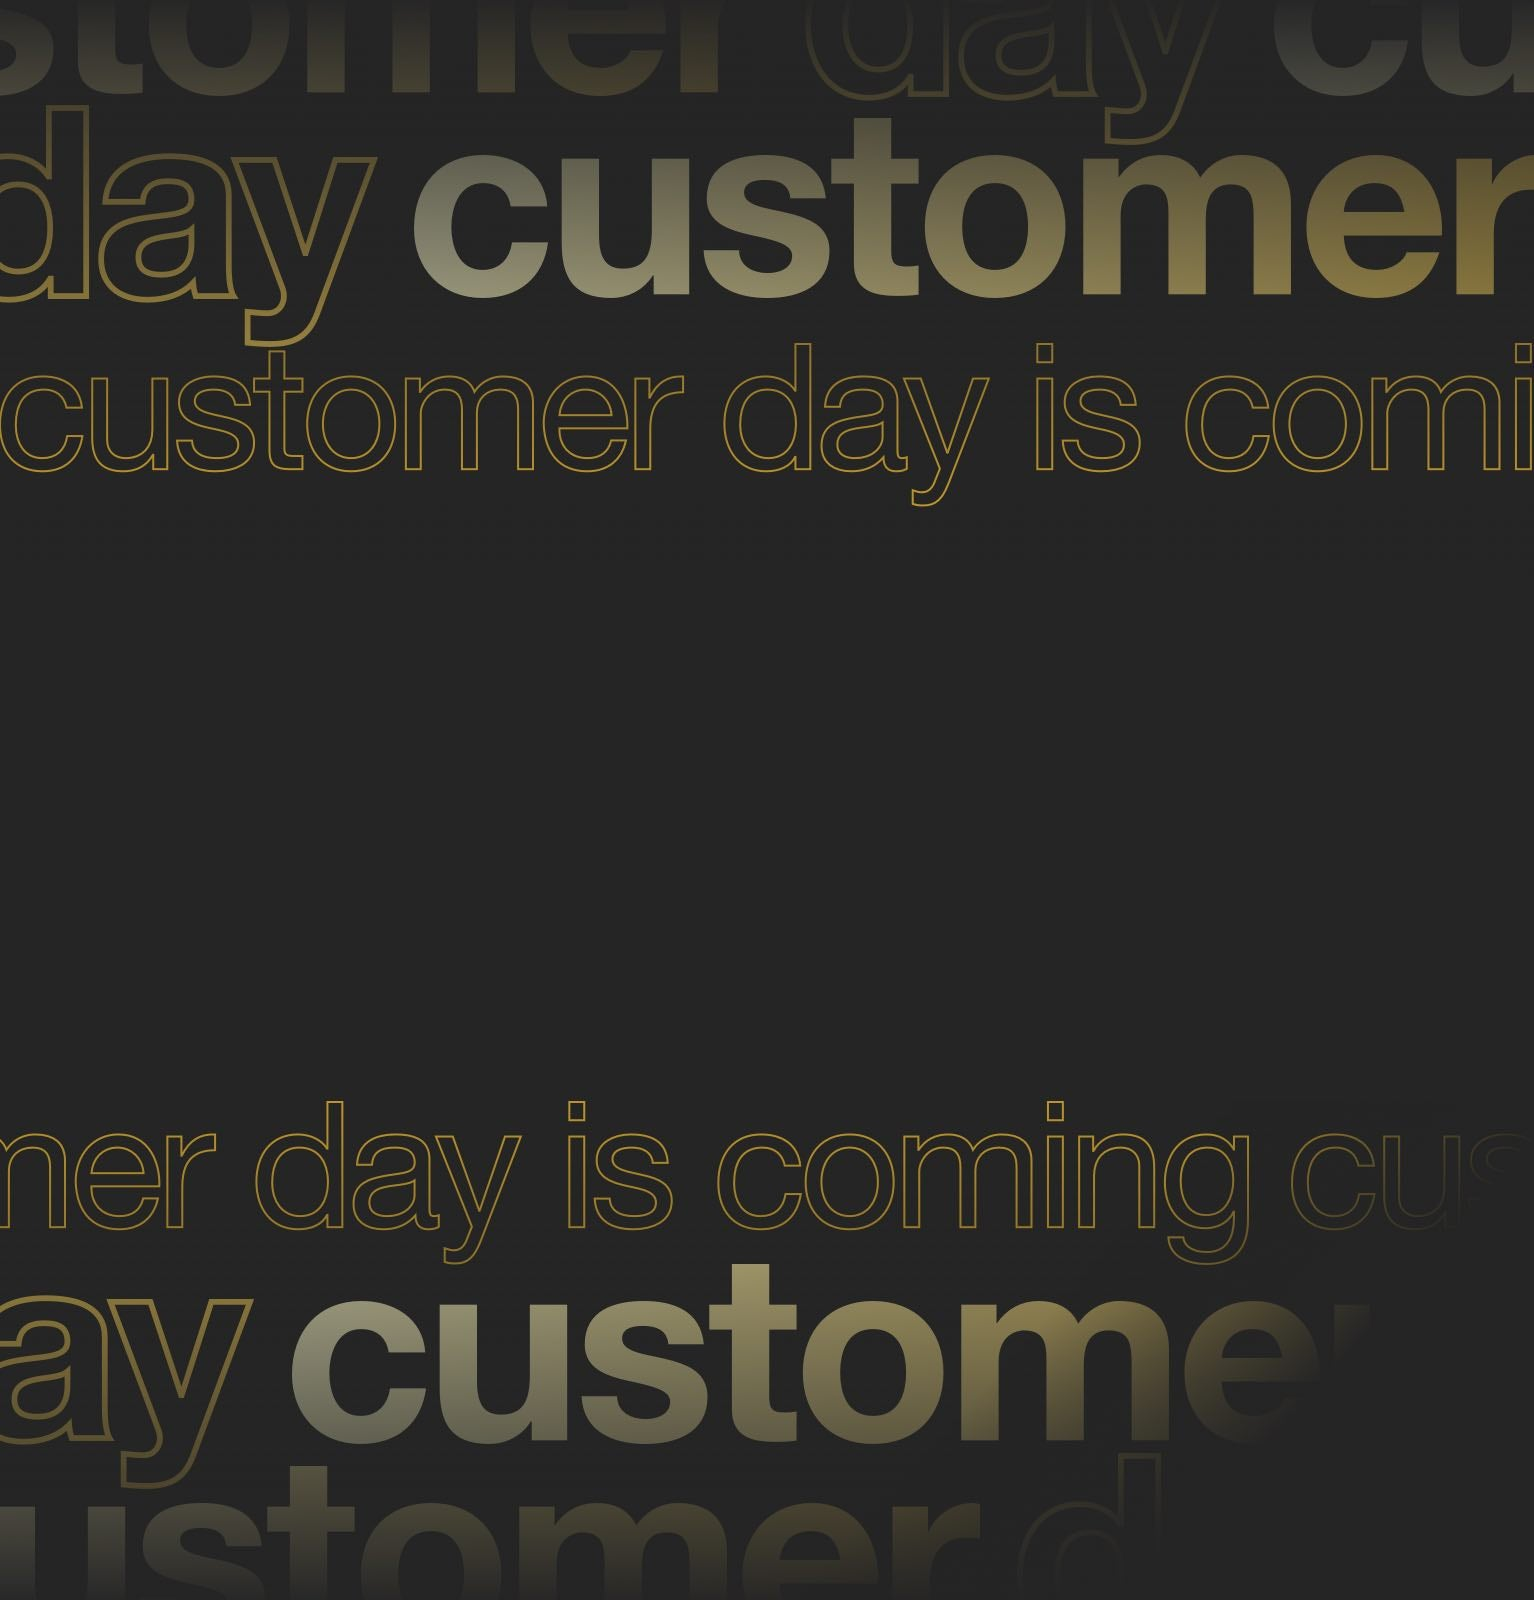 Our biggest sale of the year is almost here explore the overstock customer day preview